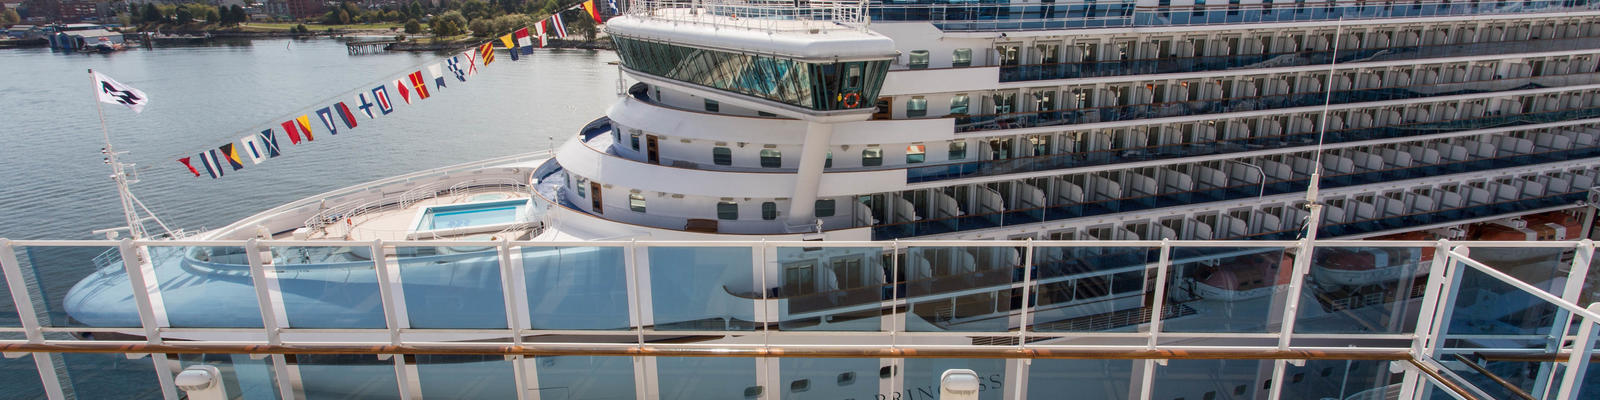 Princess Cruises ships in port (Photo: Cruise Critic)